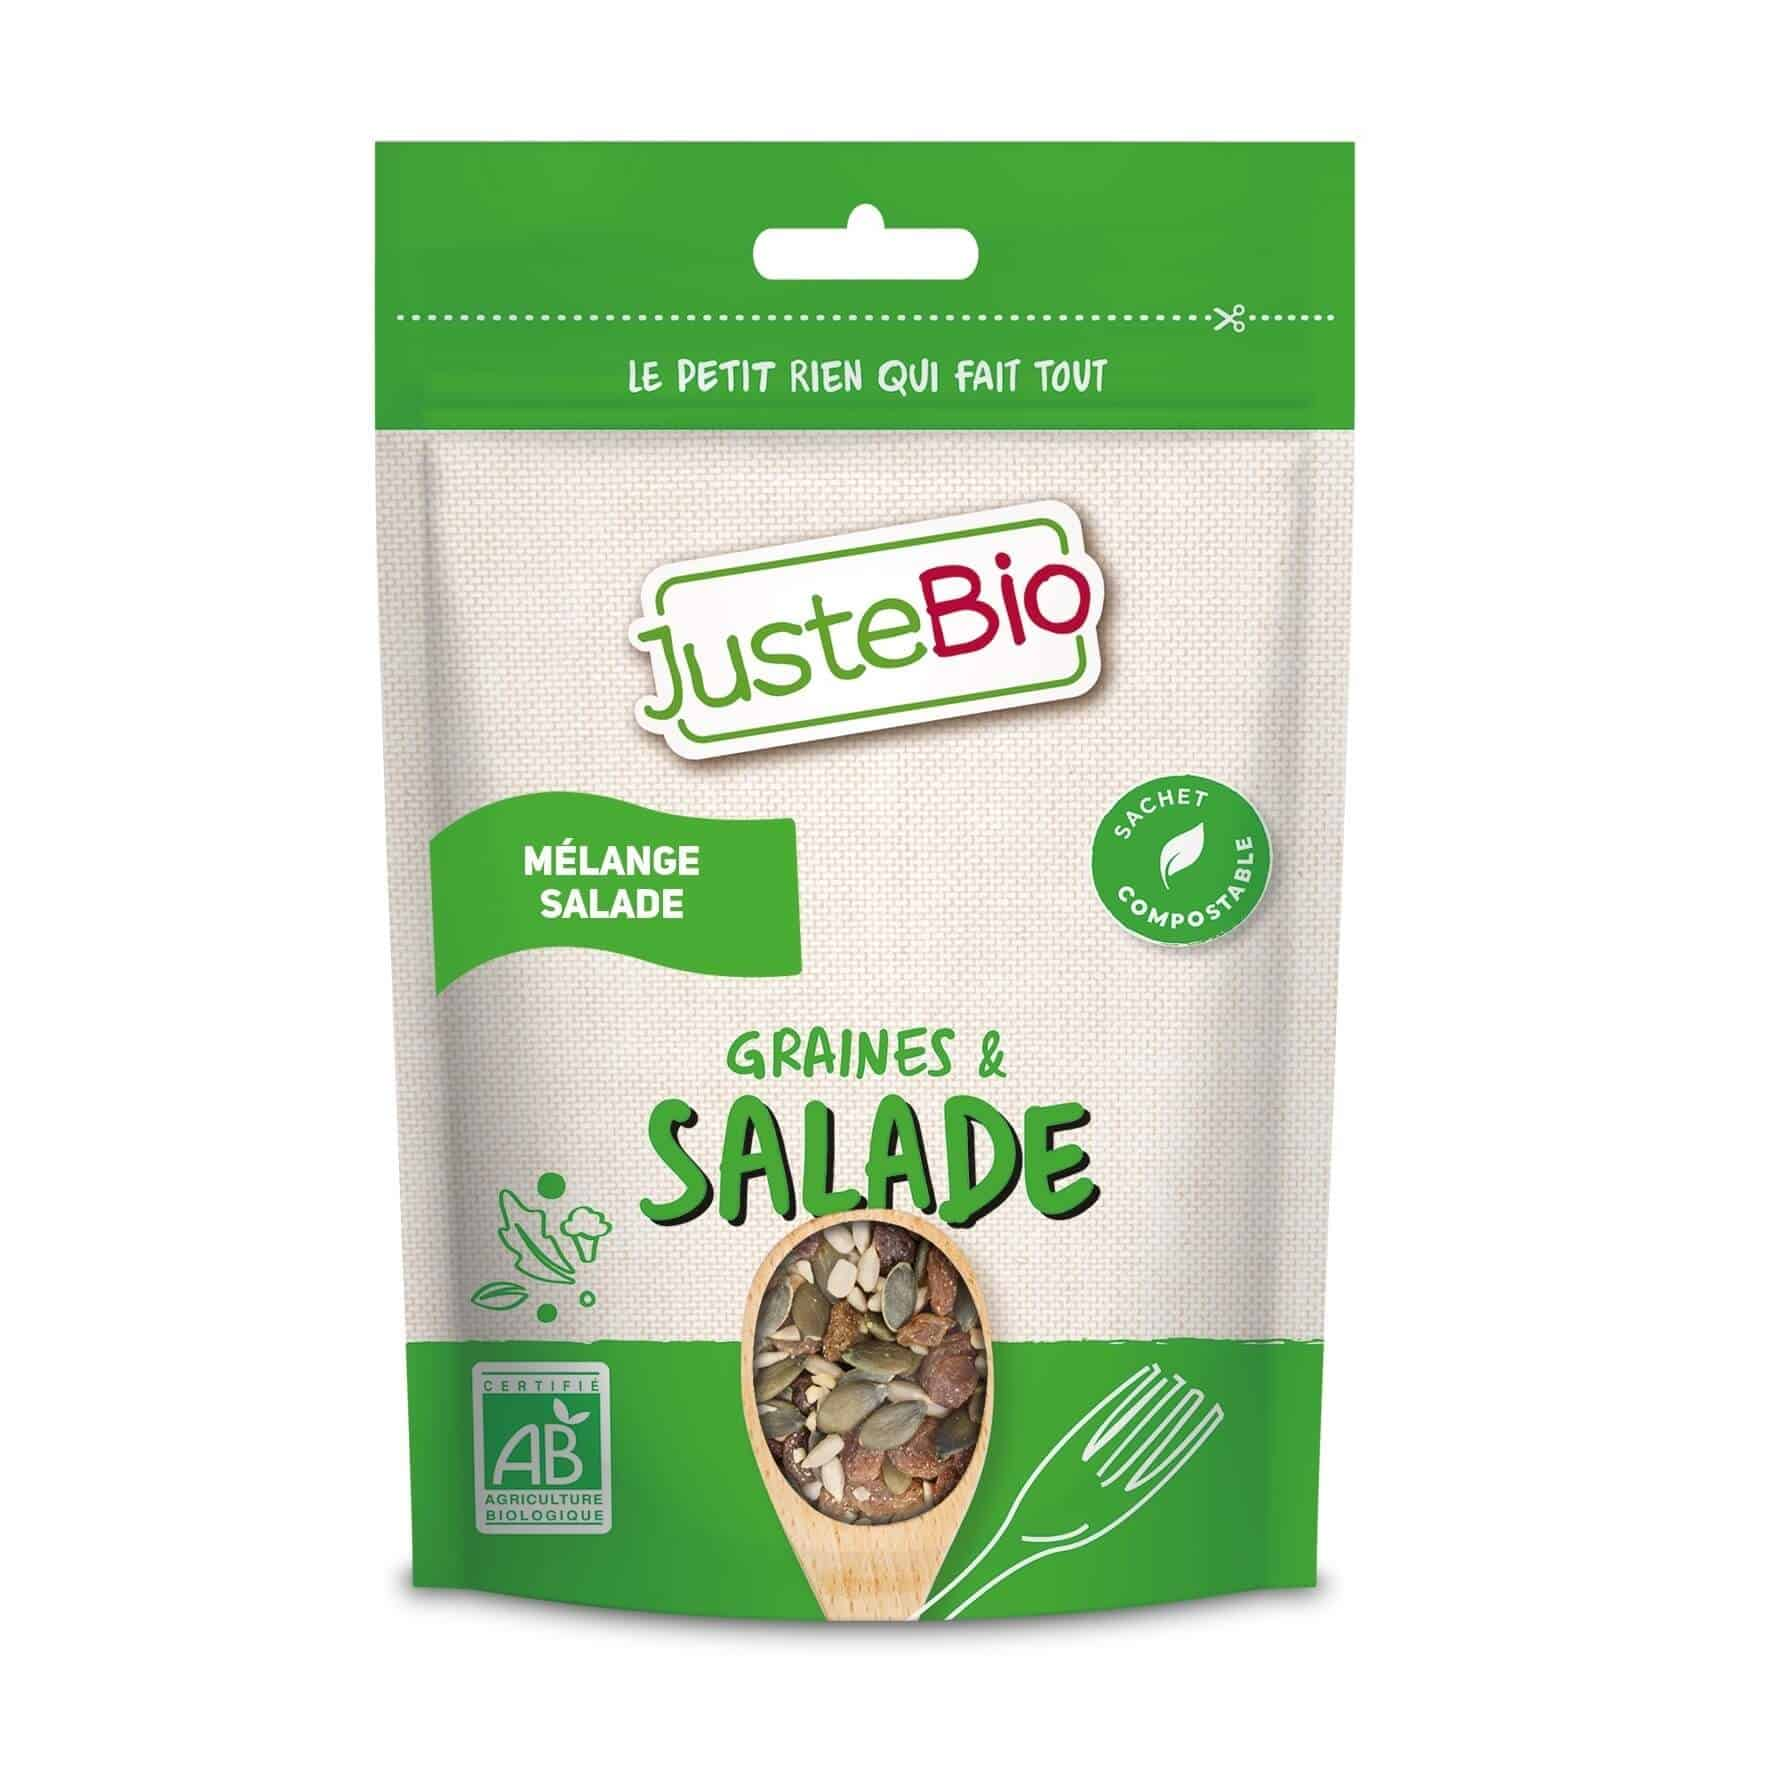 Justebio Pillow Bag GRAINES SALADE